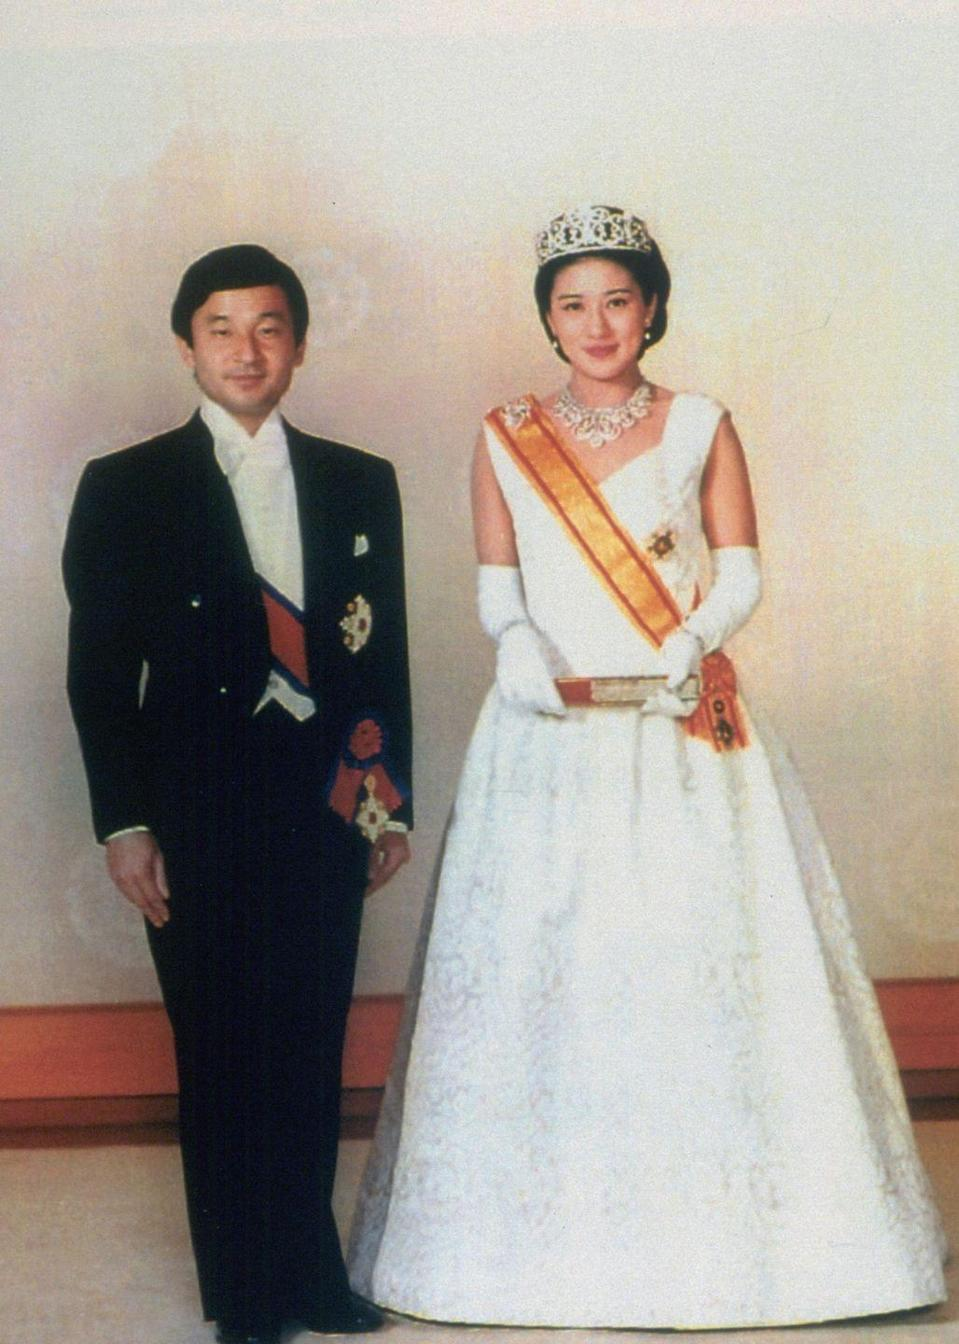 "<p>For her enthronement ceremony to Crown Prince Naruhito, Masako Owada wore a juni-hitoe, literal translation ""<a href=""http://www.nytimes.com/1993/06/09/world/royal-wedding-in-japan-merges-the-old-and-new.html"" rel=""nofollow noopener"" target=""_blank"" data-ylk=""slk:12-layered garment"" class=""link rapid-noclick-resp"">12-layered garment</a>,"" the most elegant and complex type of kimono worn exclusively by court-ladies in Japan. </p><p>Here, a picture of the bride in a more western-styled wedding gown before the Choken-no-Gi (First Audience Ceremony).</p>"